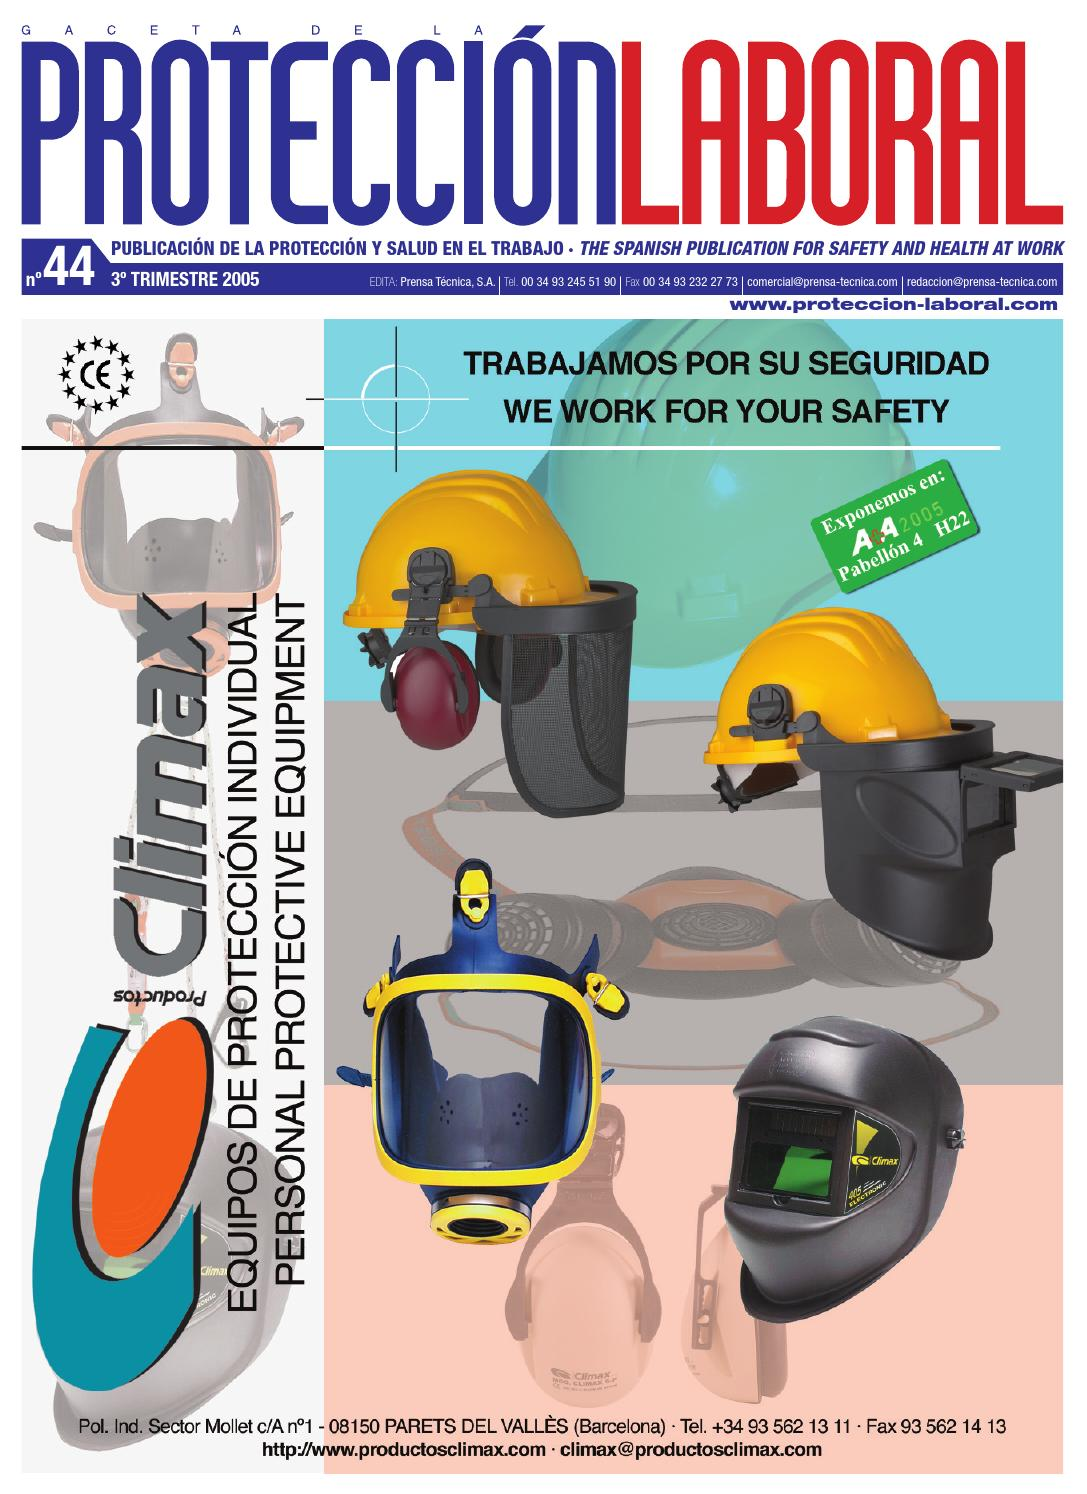 Muebles Finos Fossion - Protecci N Laboral 55 Occupational Safety Health And Environment [mjhdah]https://image.isu.pub/170810142809-4bb1a7a034019312964d186c75edf04f/jpg/page_1.jpg